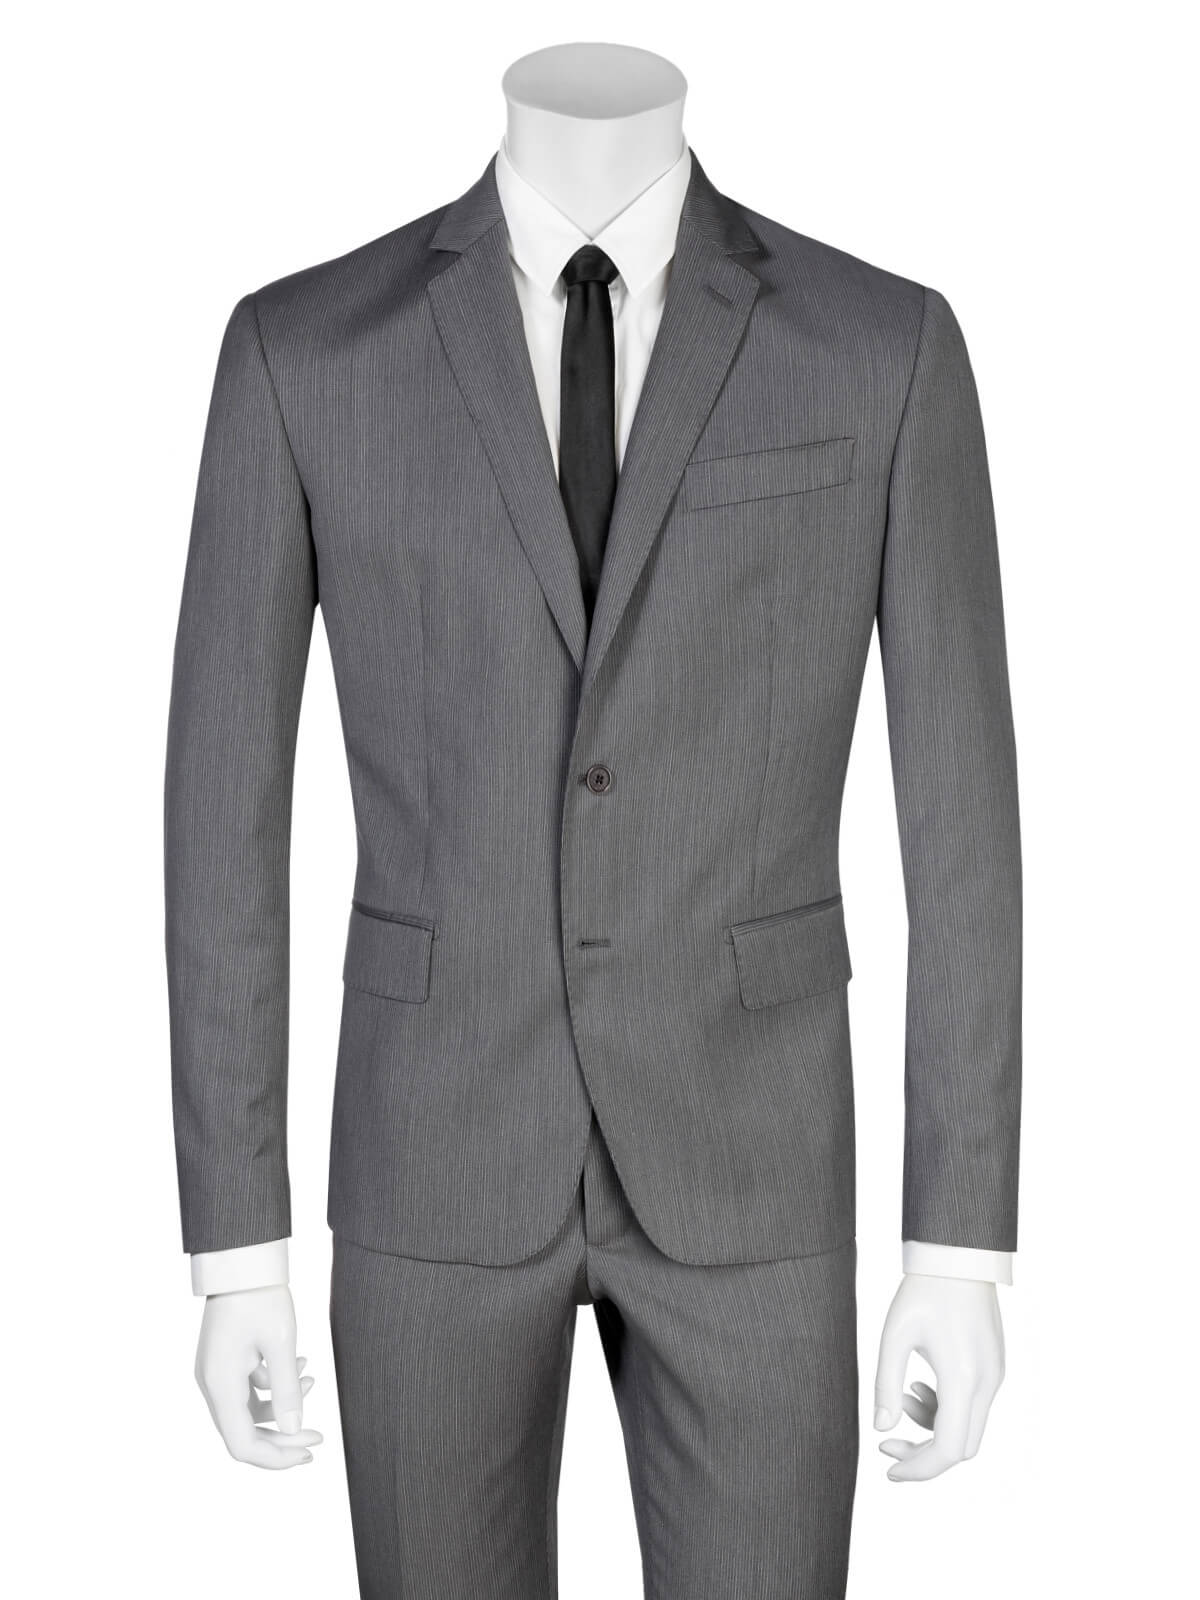 Pierre Balmain Suit Slim Fit Pinstriped Dark Gray by Balmain